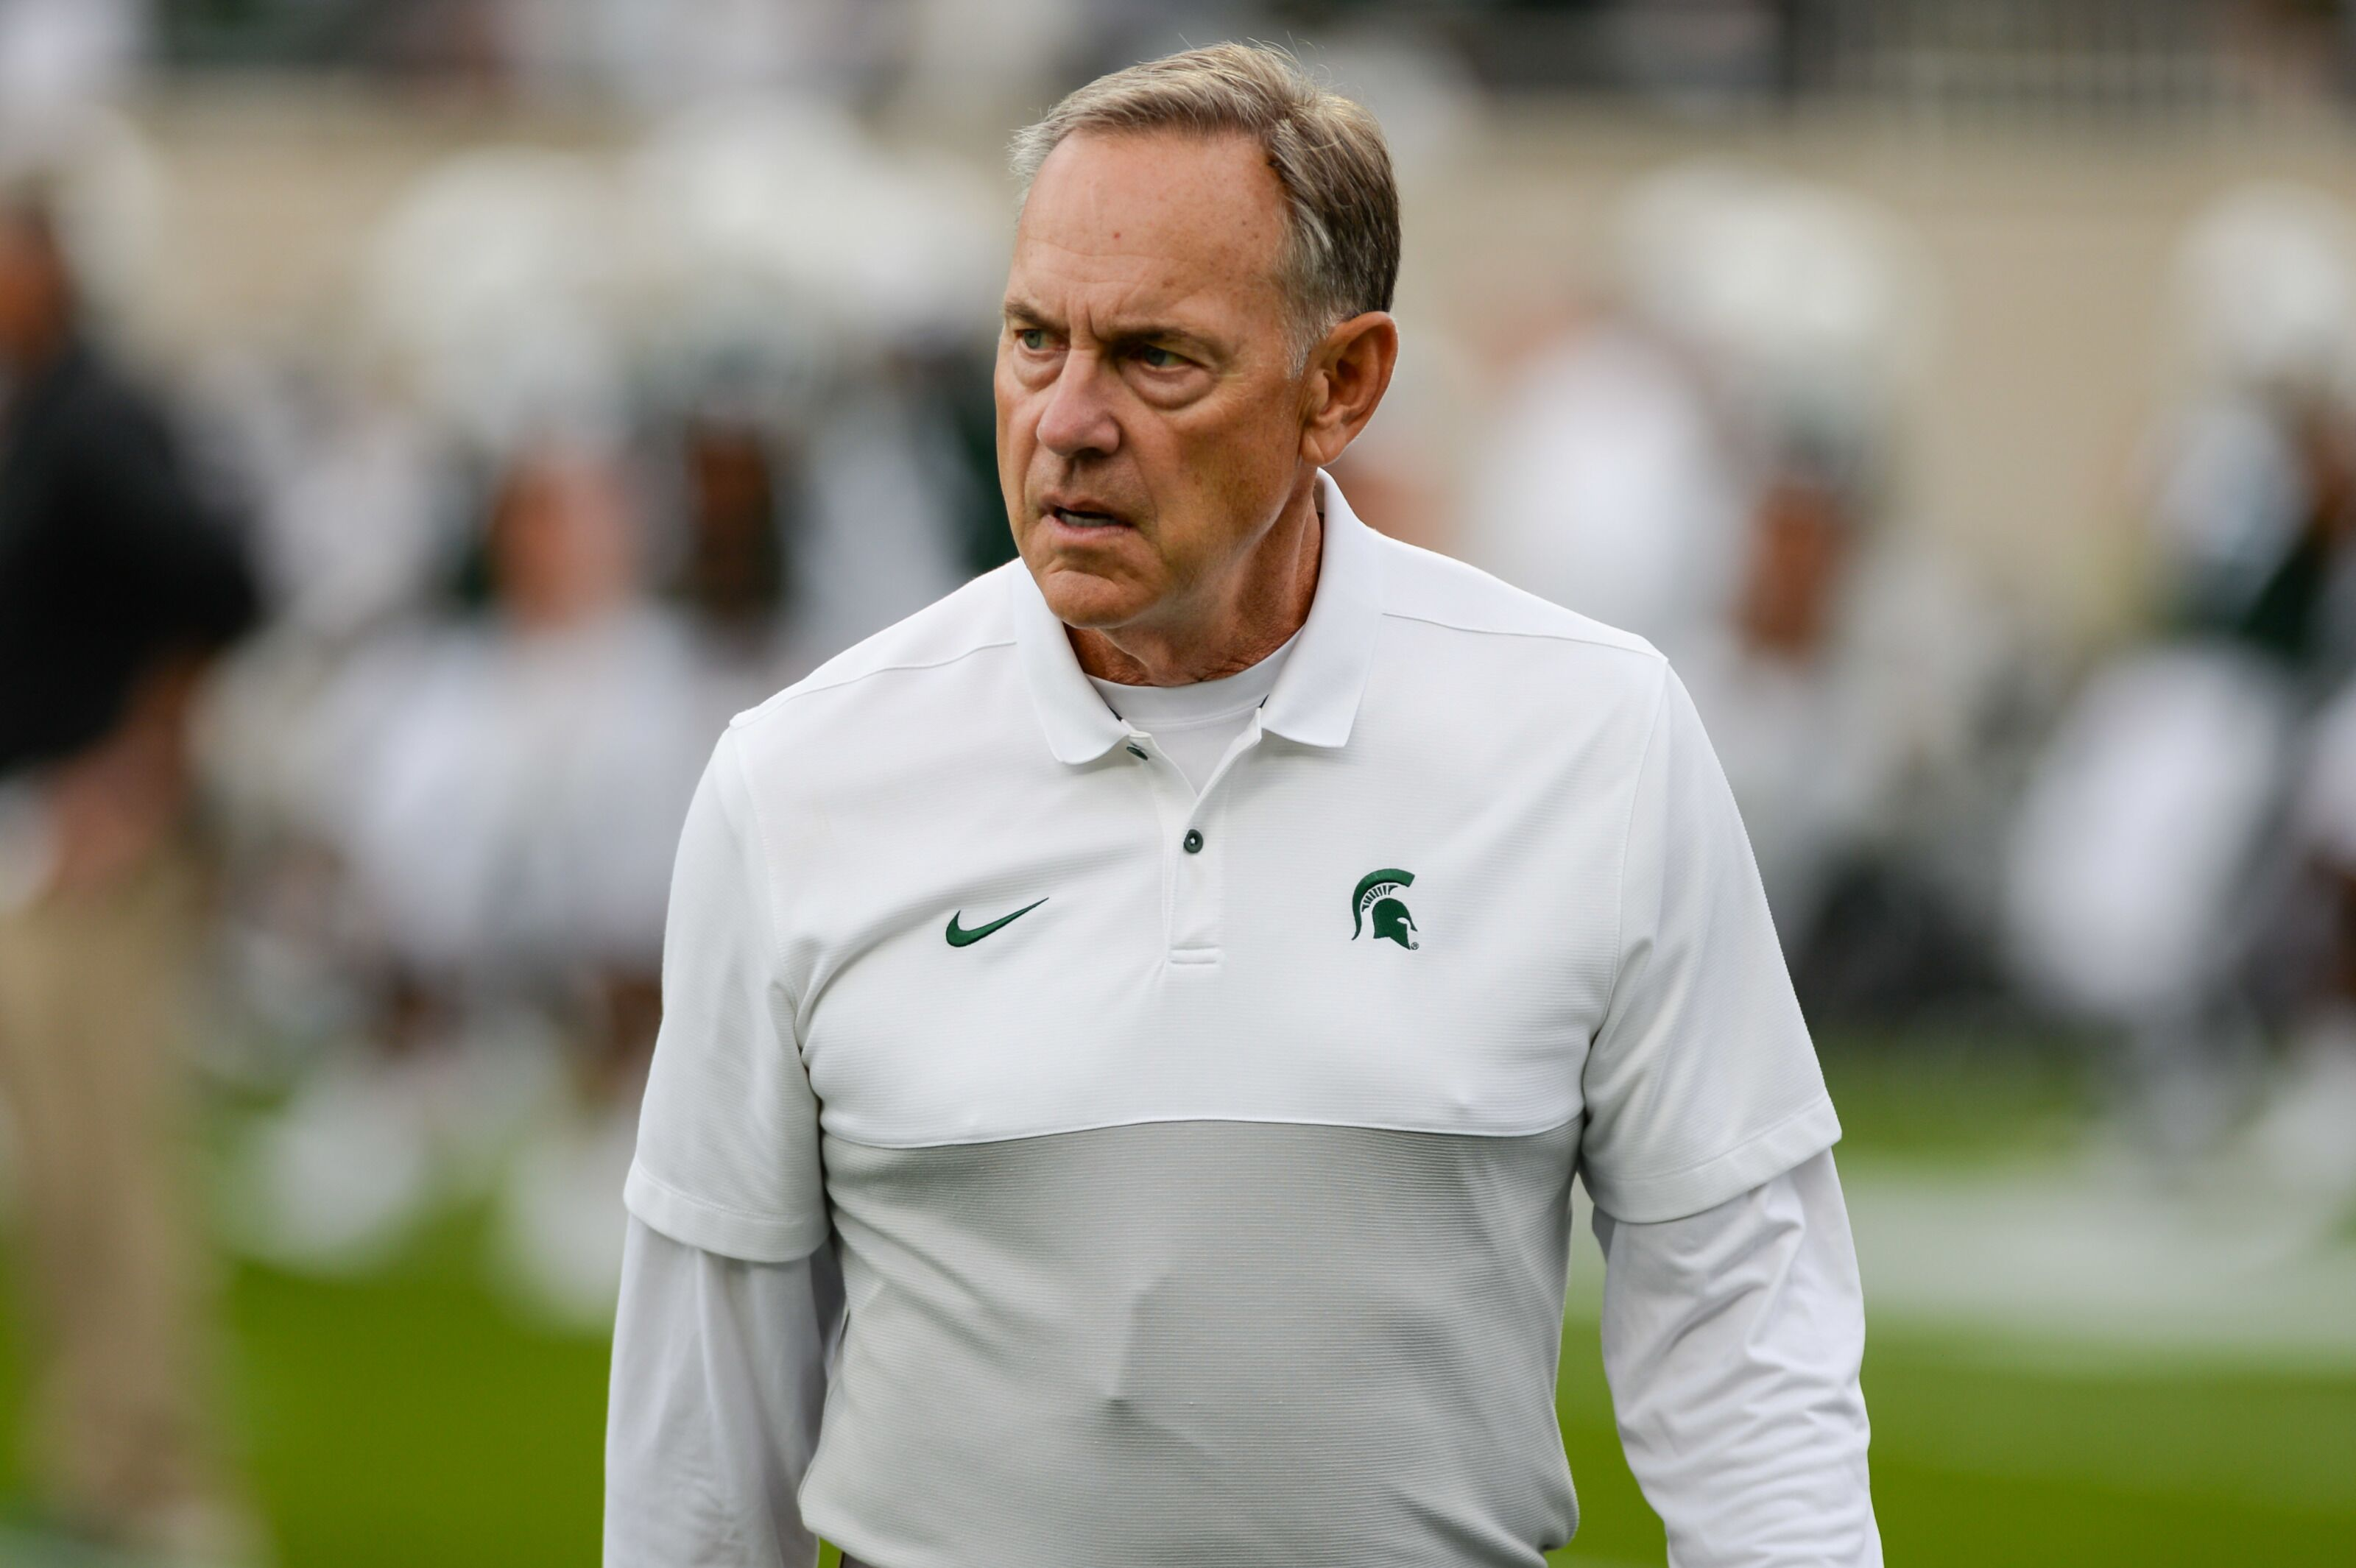 Michigan State football: 5 potential replacements for Mark Dantonio